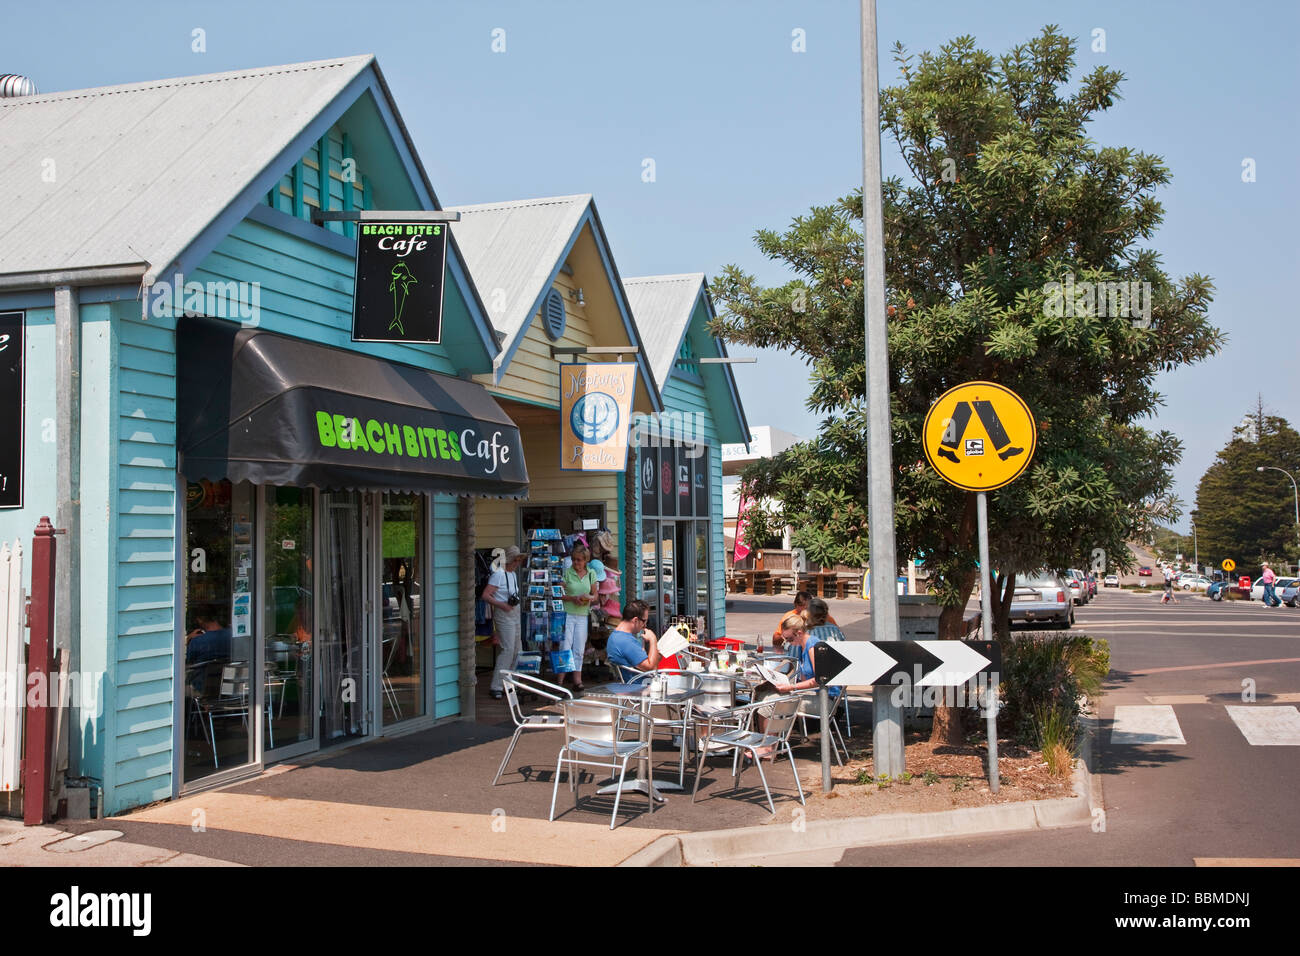 Australia, Victoria. A roadside café at Peterborough, a small town on the Great Ocean Road. - Stock Image